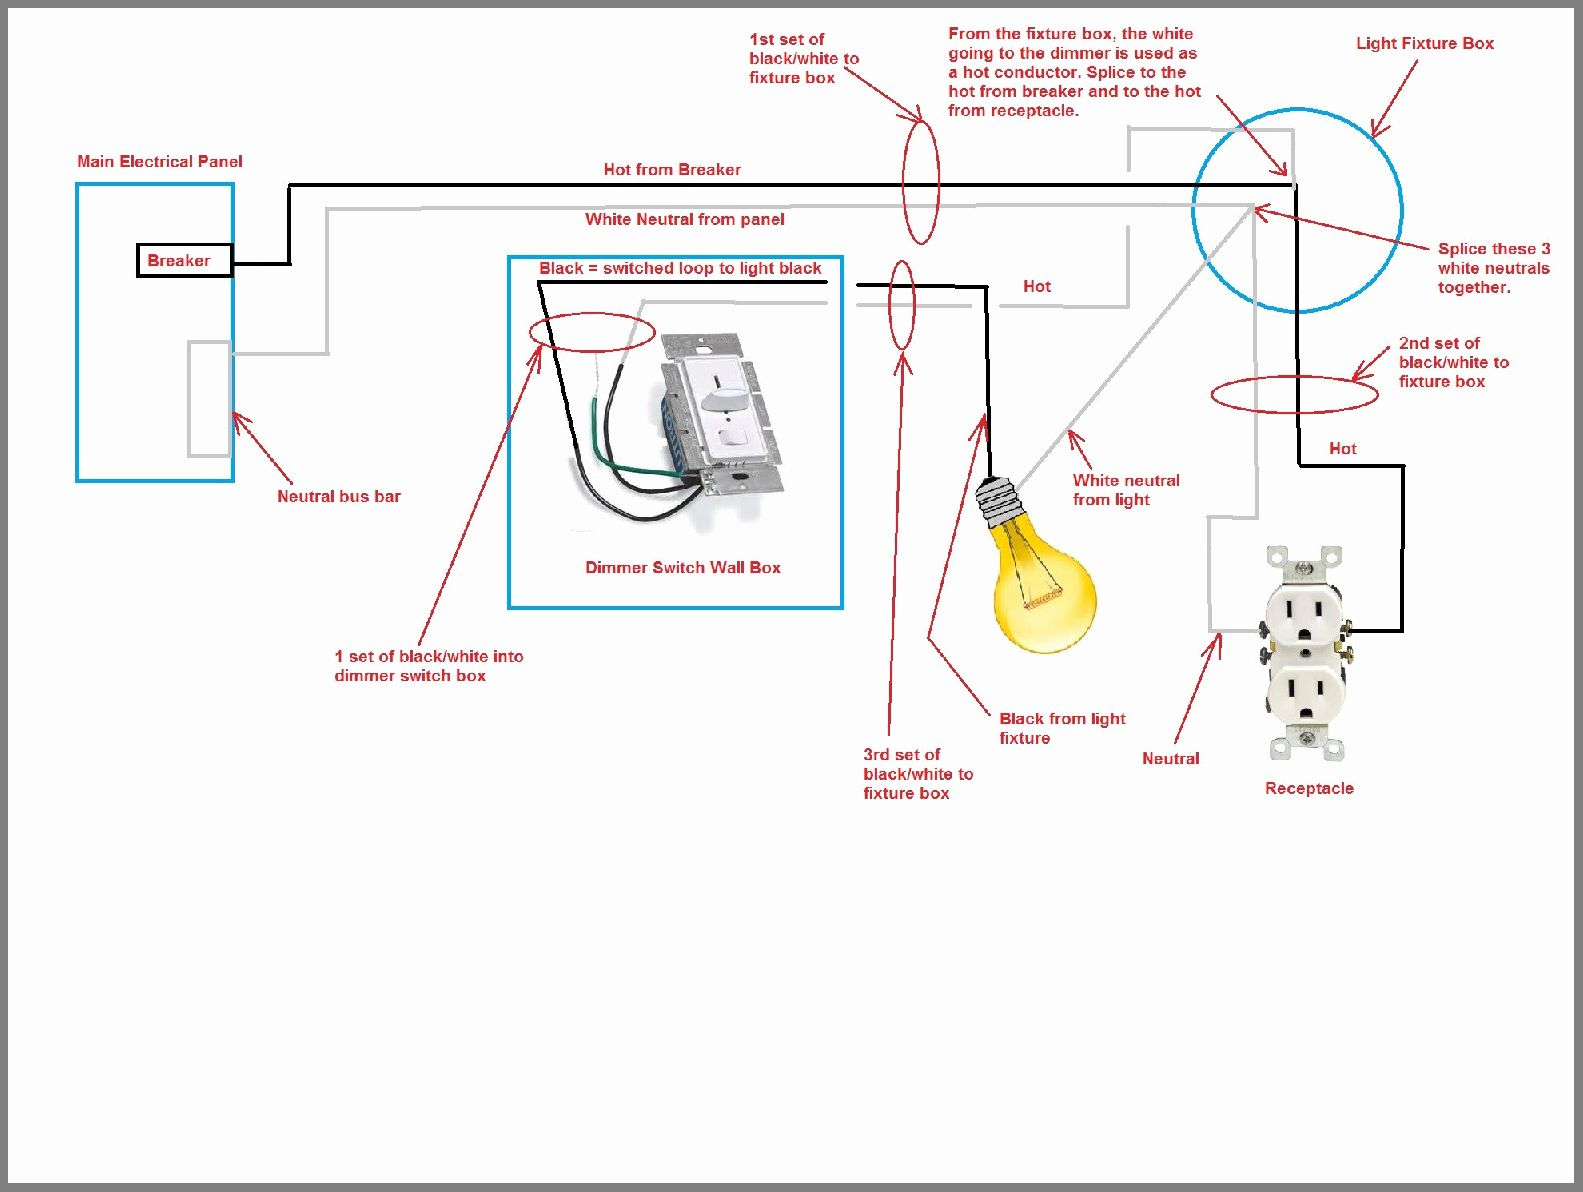 Wiring Diagrams For Black Fixtures | Schematic Diagram - Light Fixture Wiring Diagram